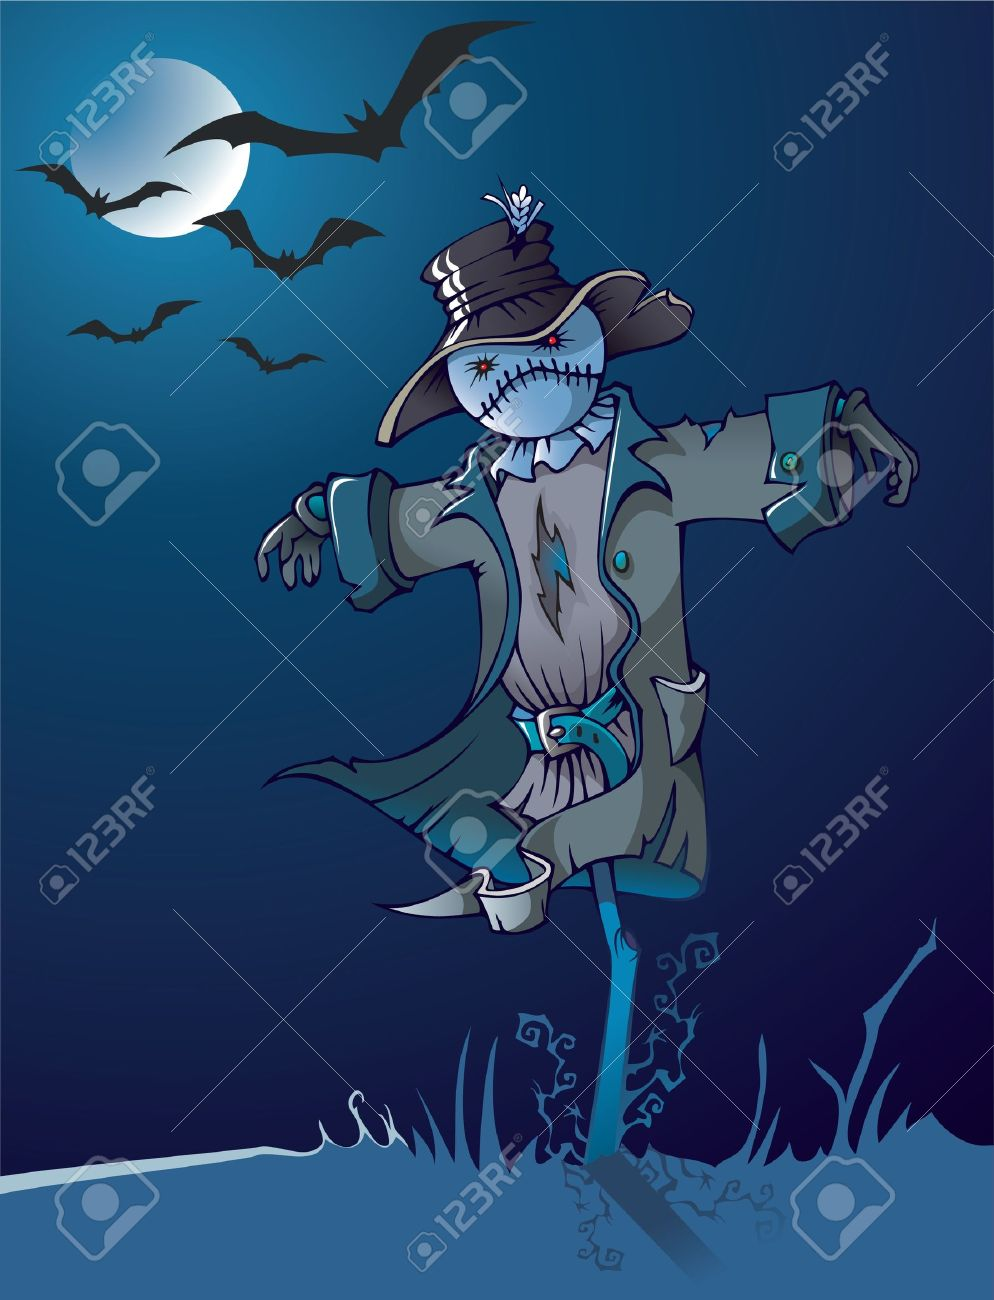 Evil scarecrow under the moon, night scene, cartoon illustration Stock Vector - 8028374